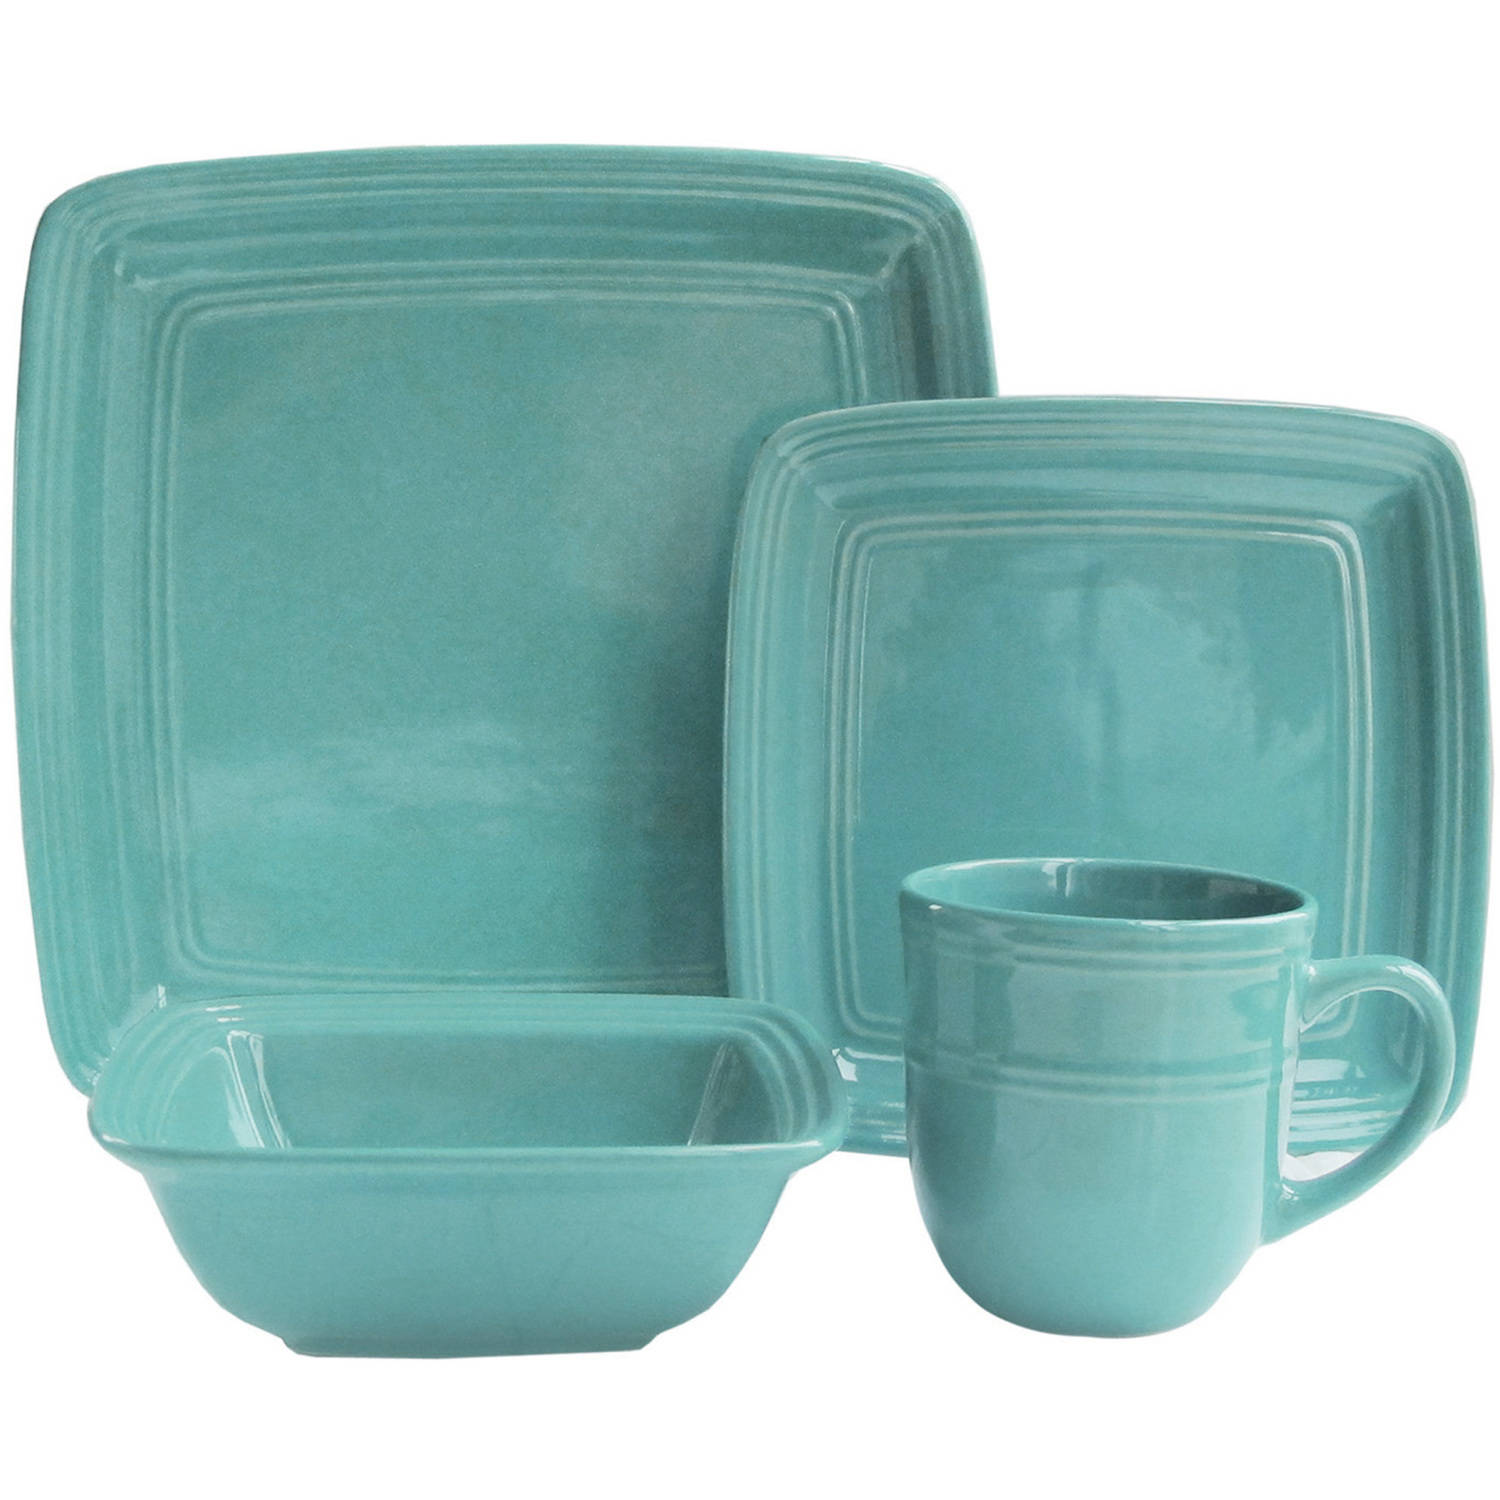 Madelyn Turquoise Square 16-Piece Dinnerware Set  sc 1 st  Walmart & Madelyn Turquoise Square 16-Piece Dinnerware Set - Walmart.com